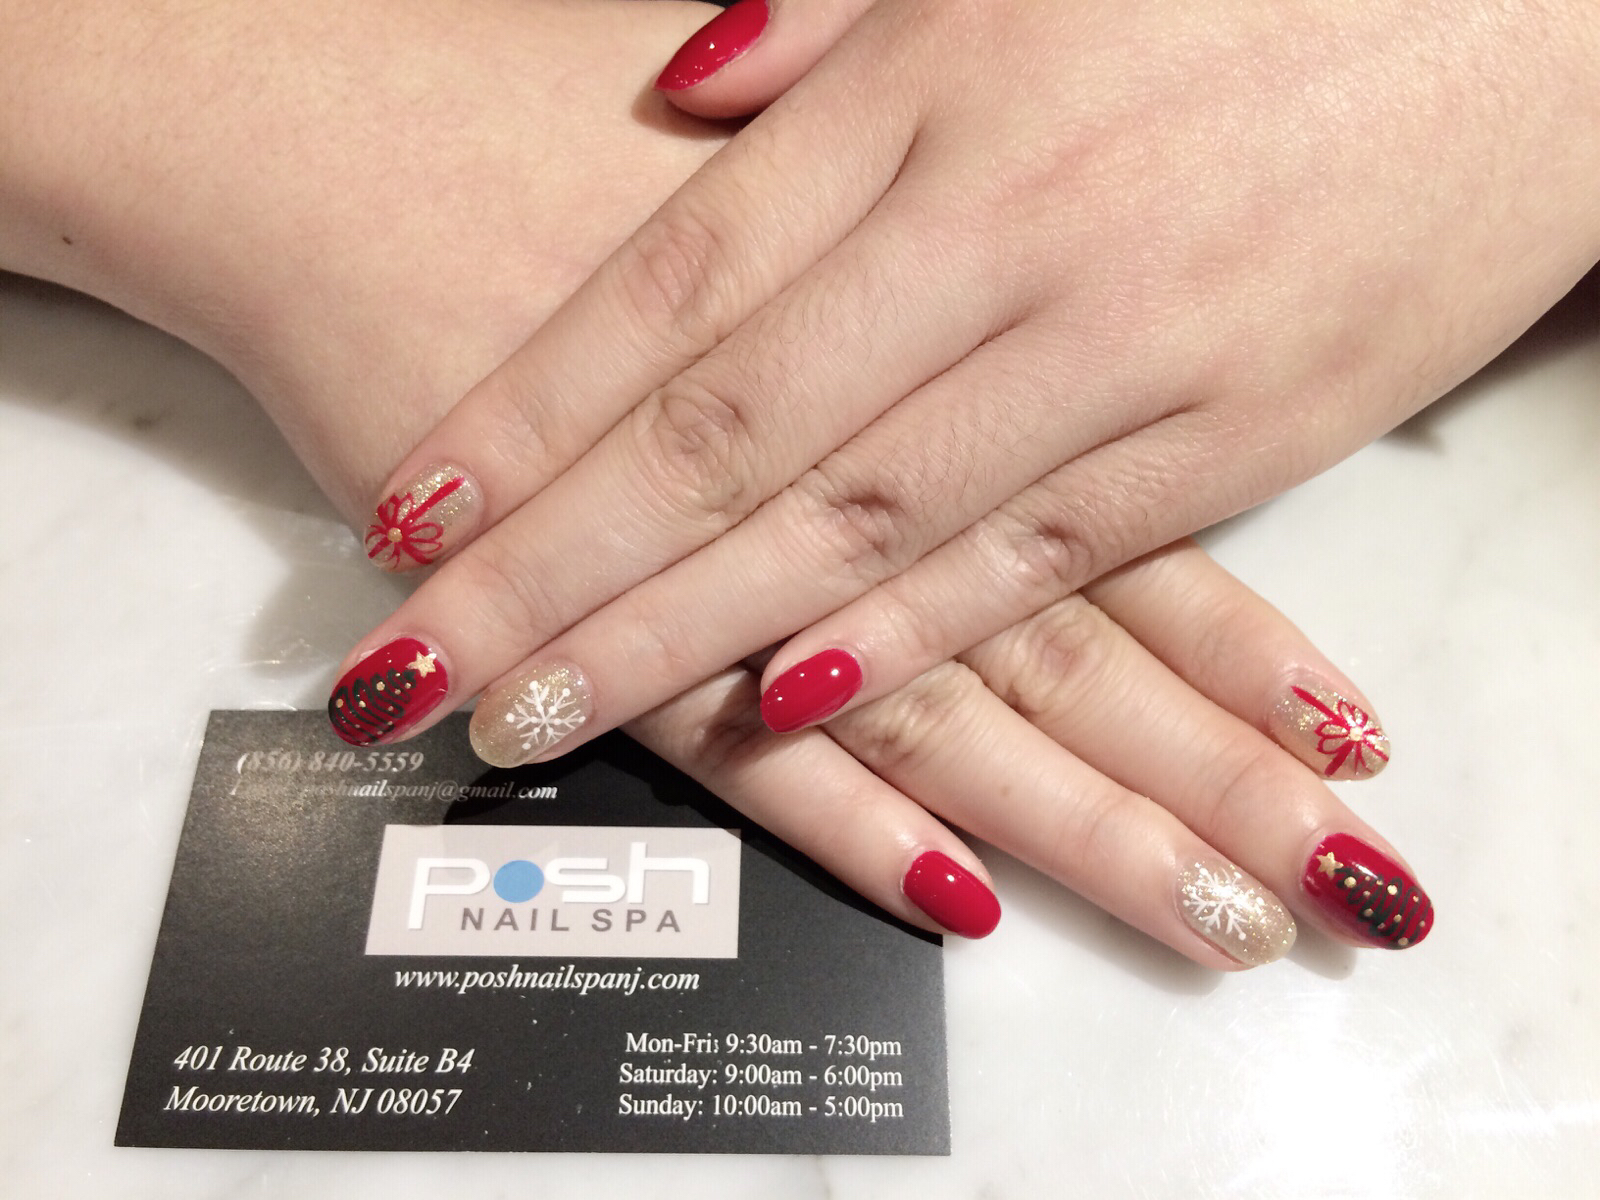 Nail Salons Open On Sunday Indianapolis - Best Nail 2018